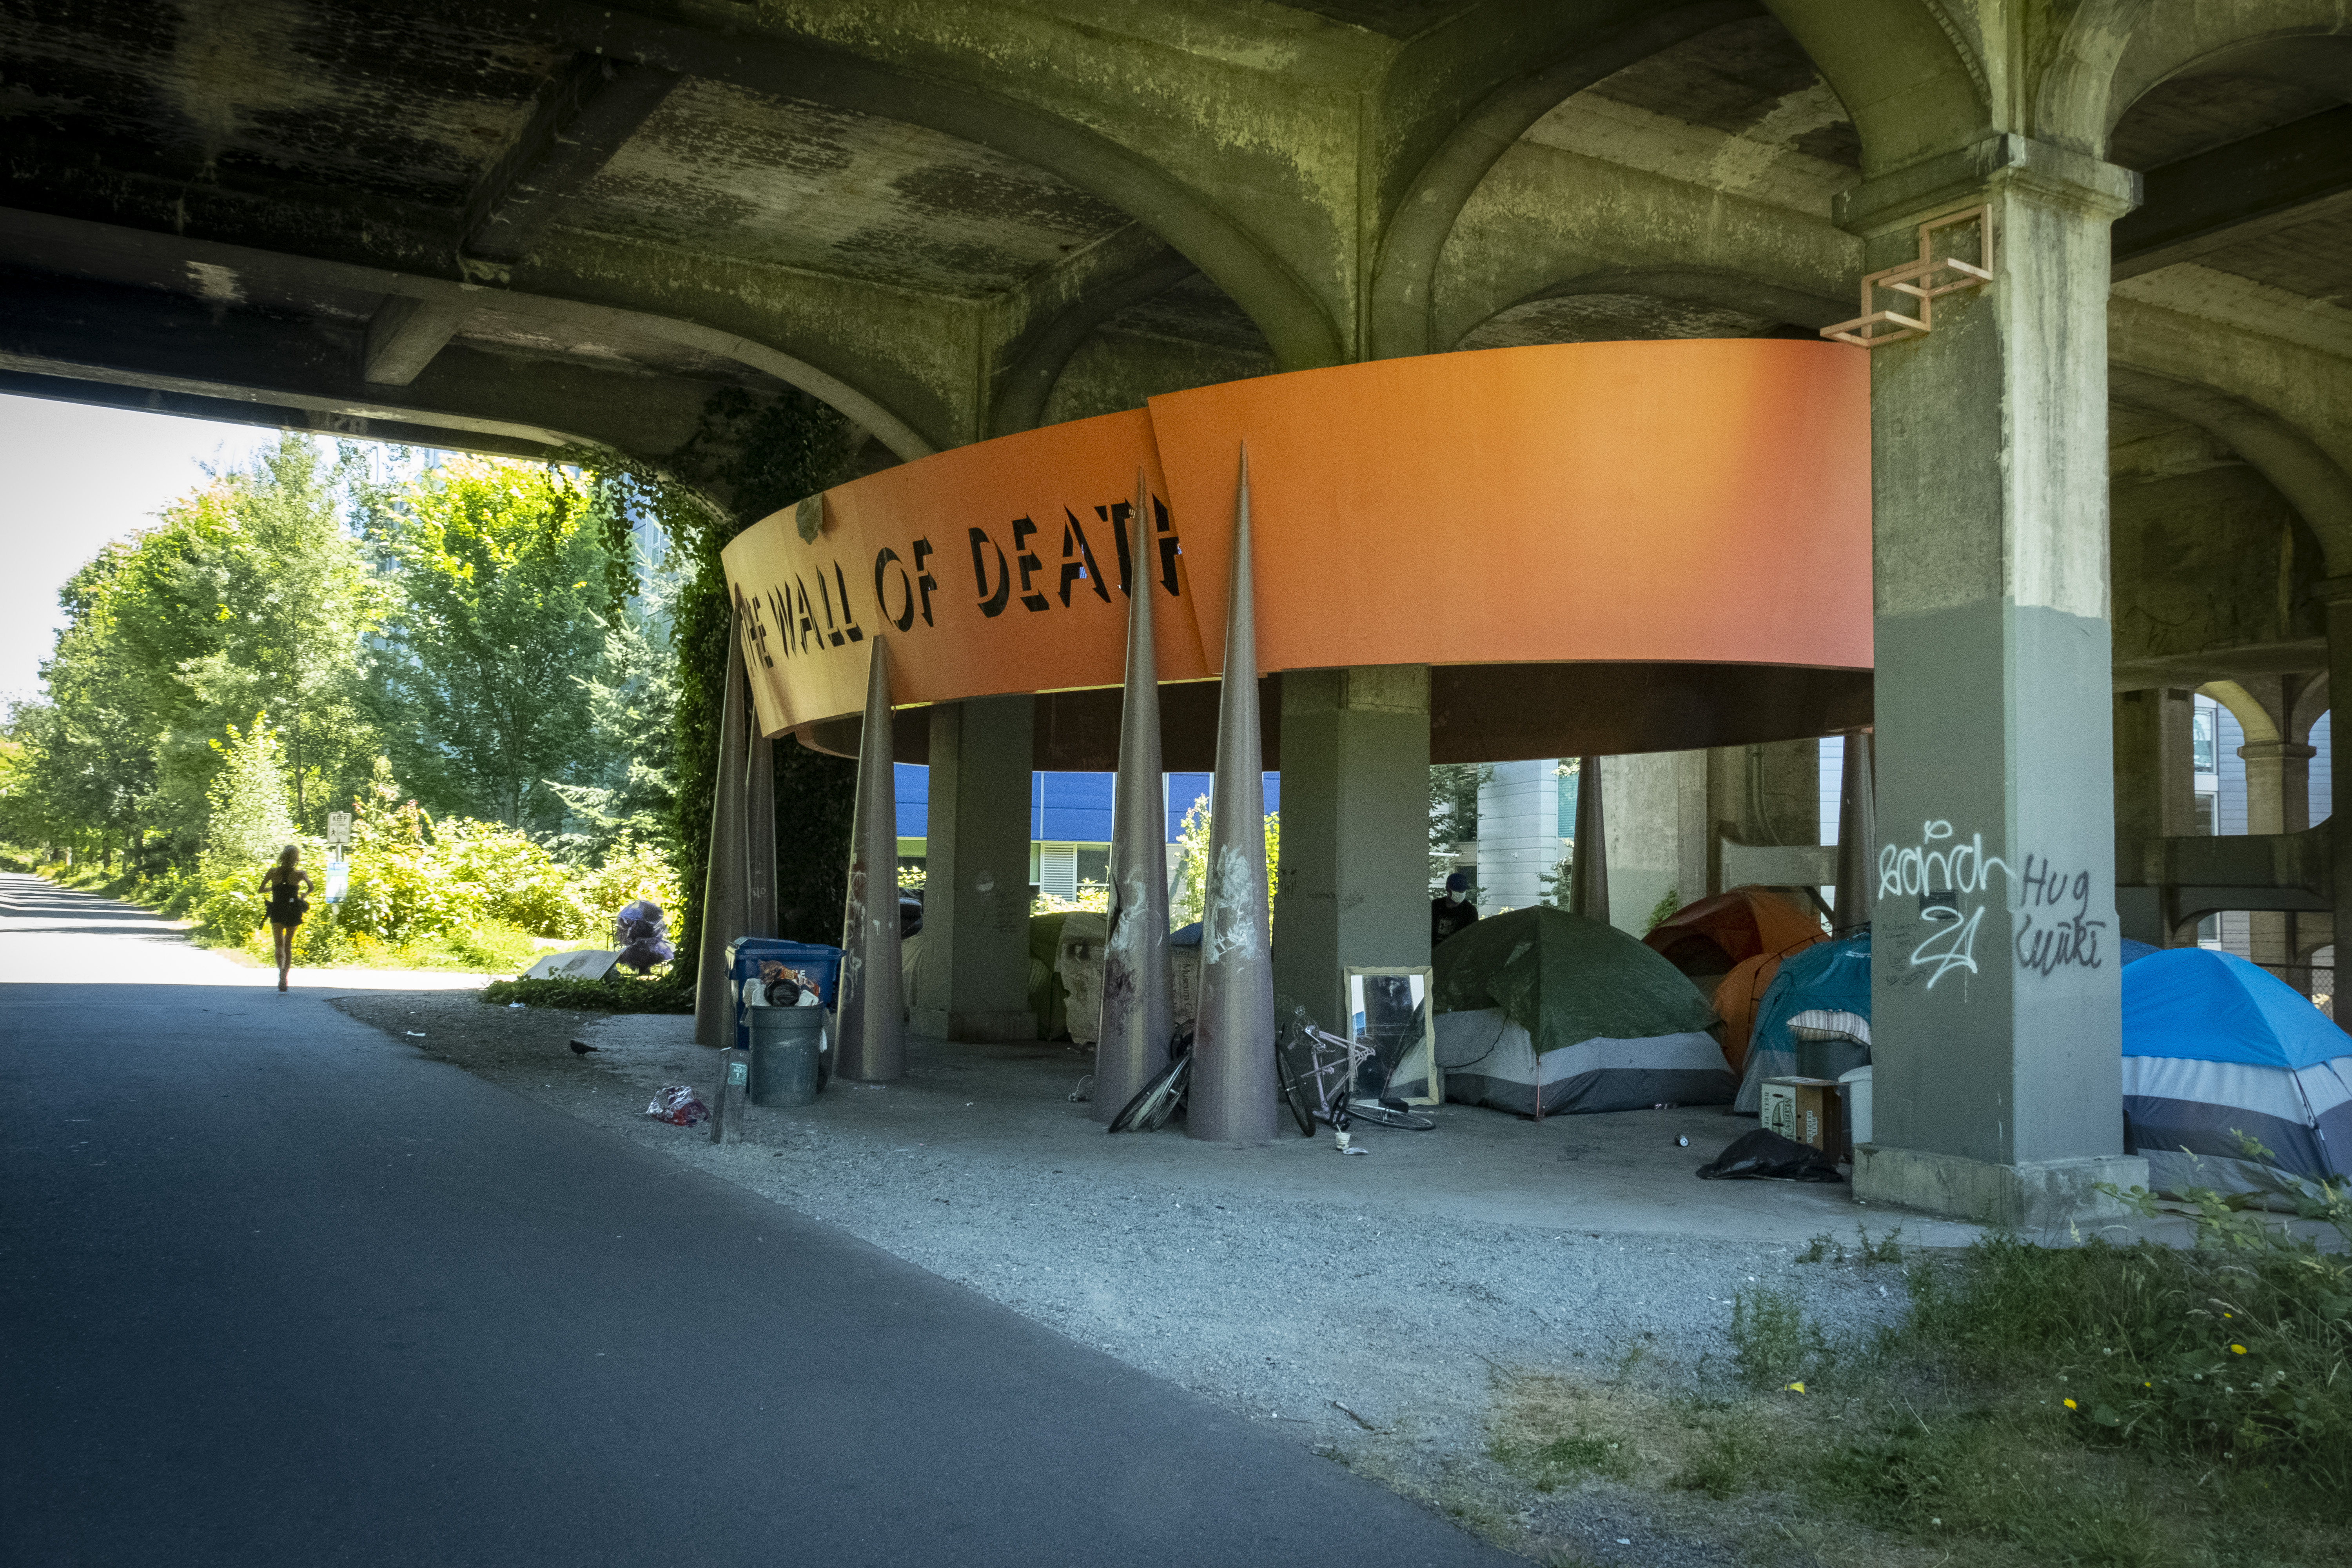 """Wall of Death"" - University Bridge & Burke Gilman Trail. Artists: Mowry Baden and Colin Baden .{ }Seattle is full of amazing artists doing amazing art. Some of the largest and most unusual pieces in the city are hidden in plain sight. So, take a stroll with us to discover some of Seattle's coolest public art displays. Some fresh air will do you good! (Image: John Prentice / Seattle Refined)"